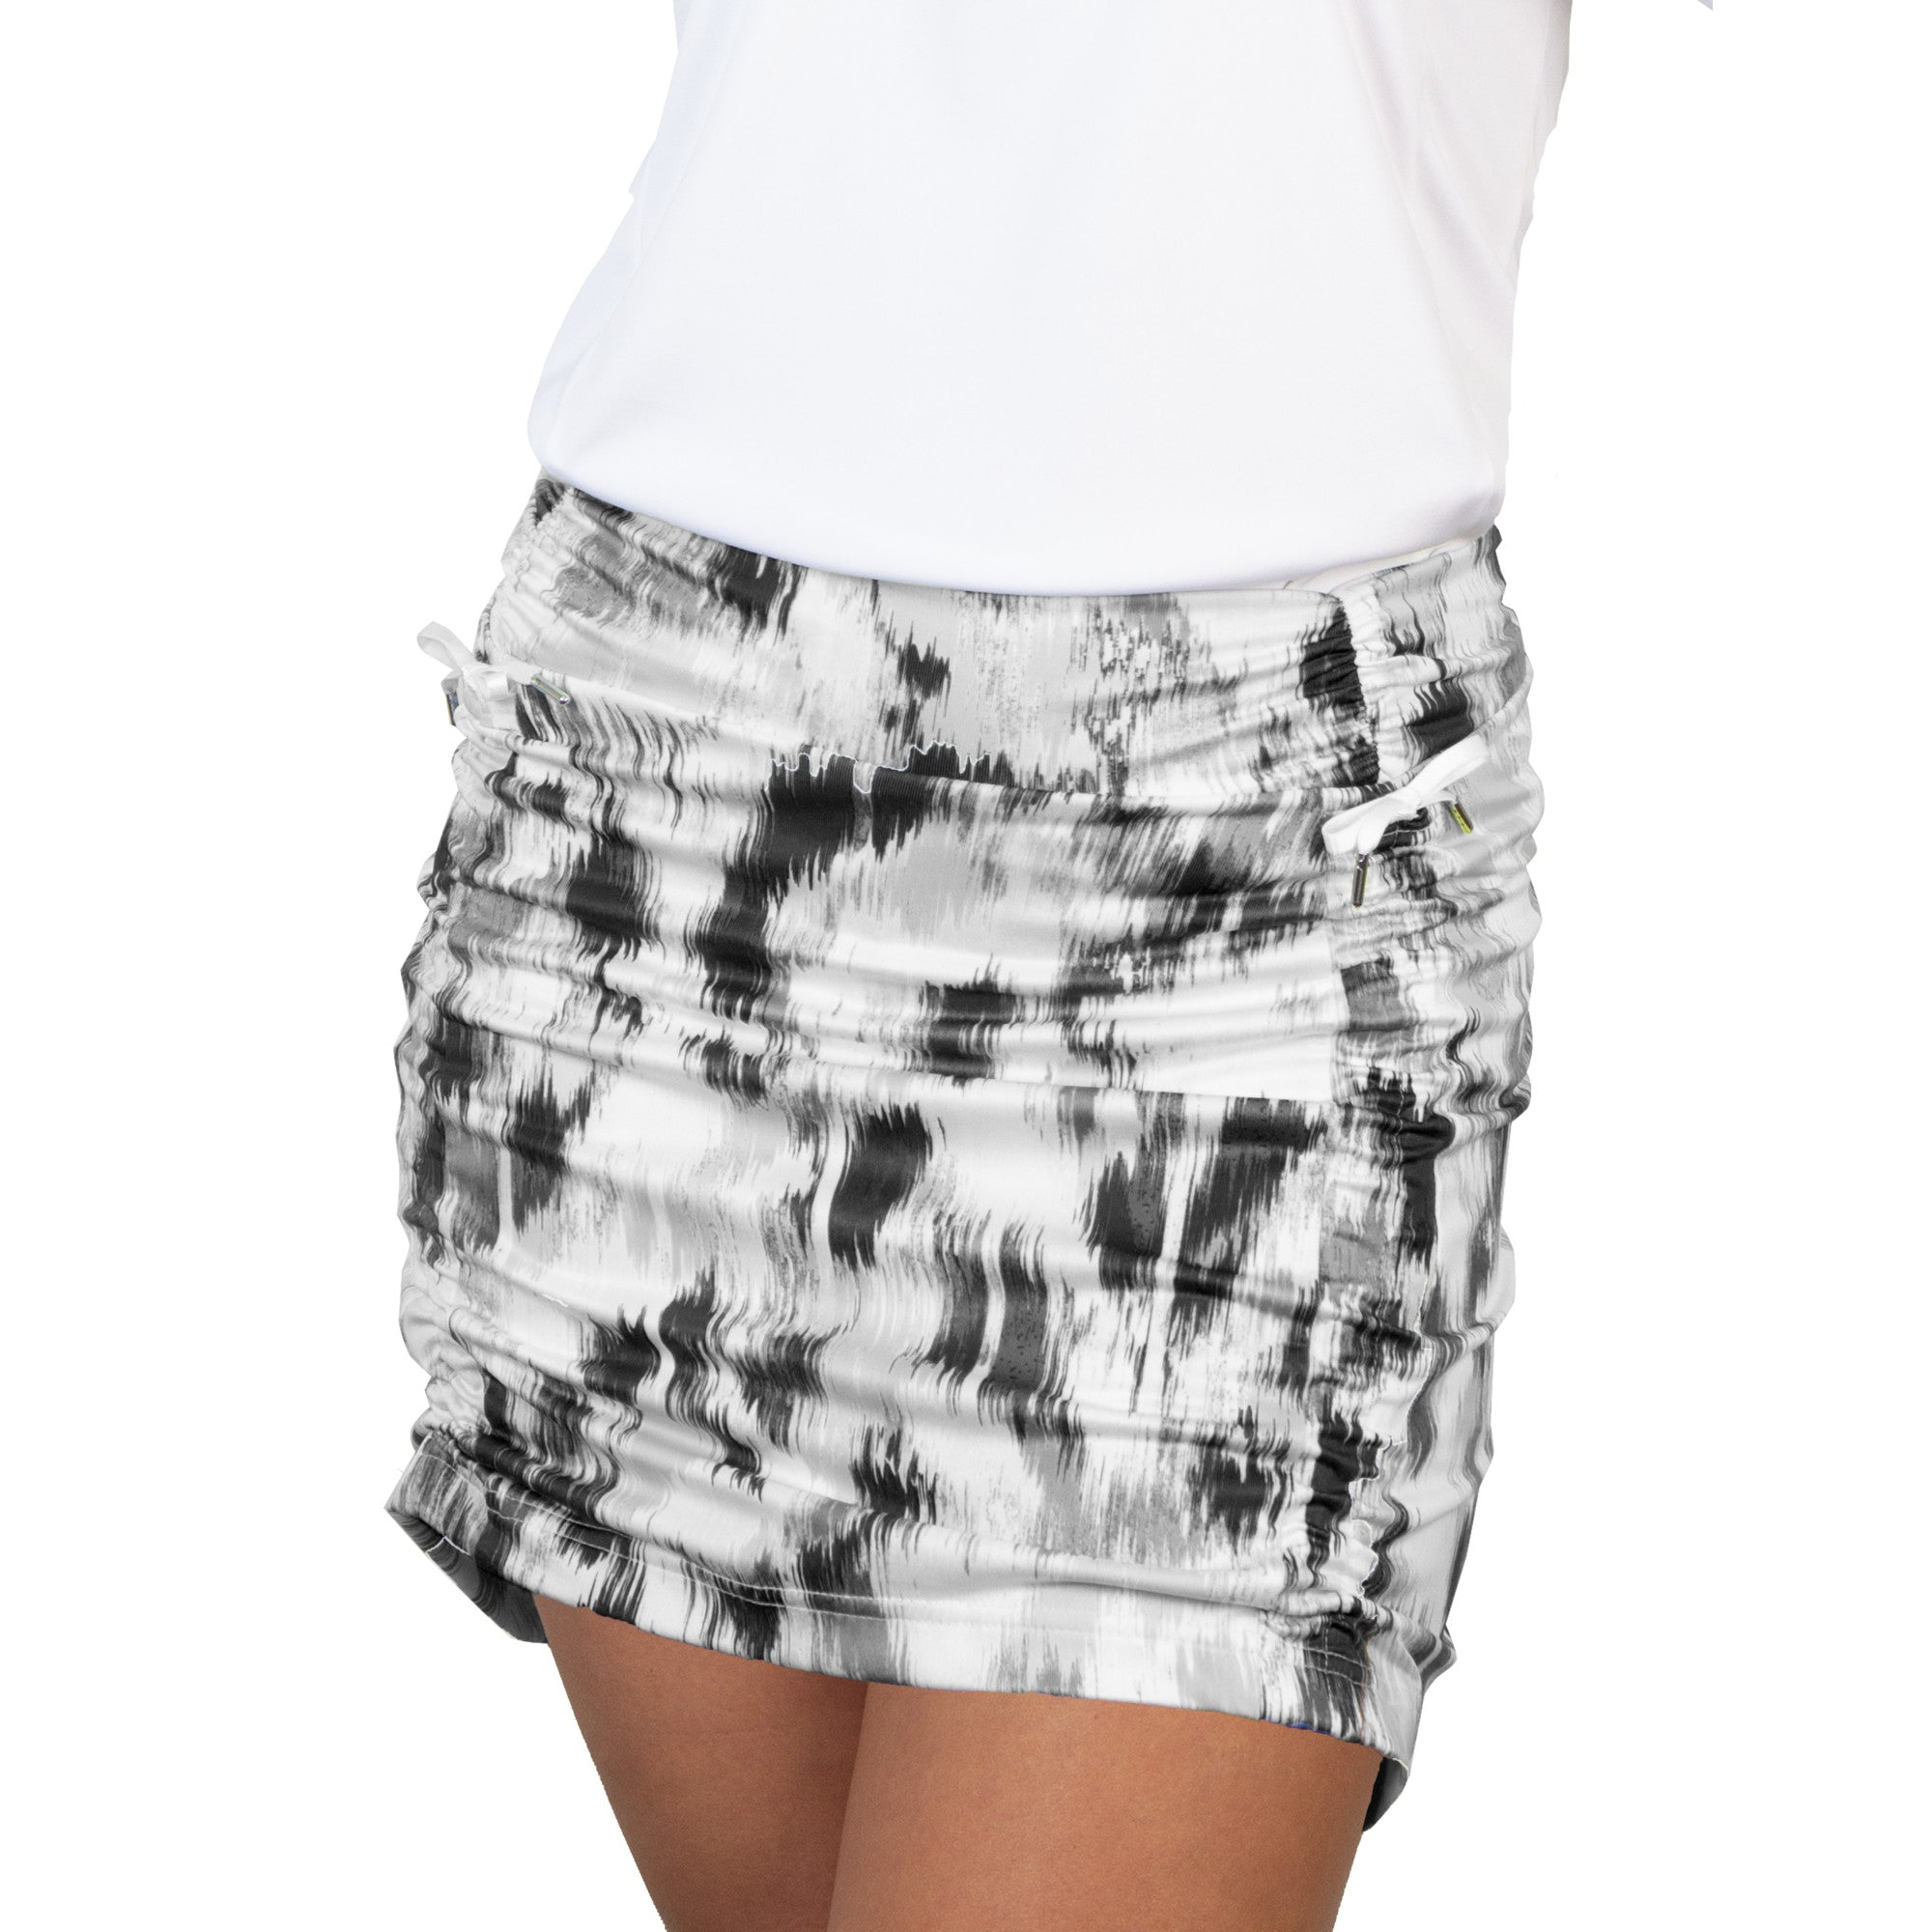 Antigua Cinch Skort - A100780